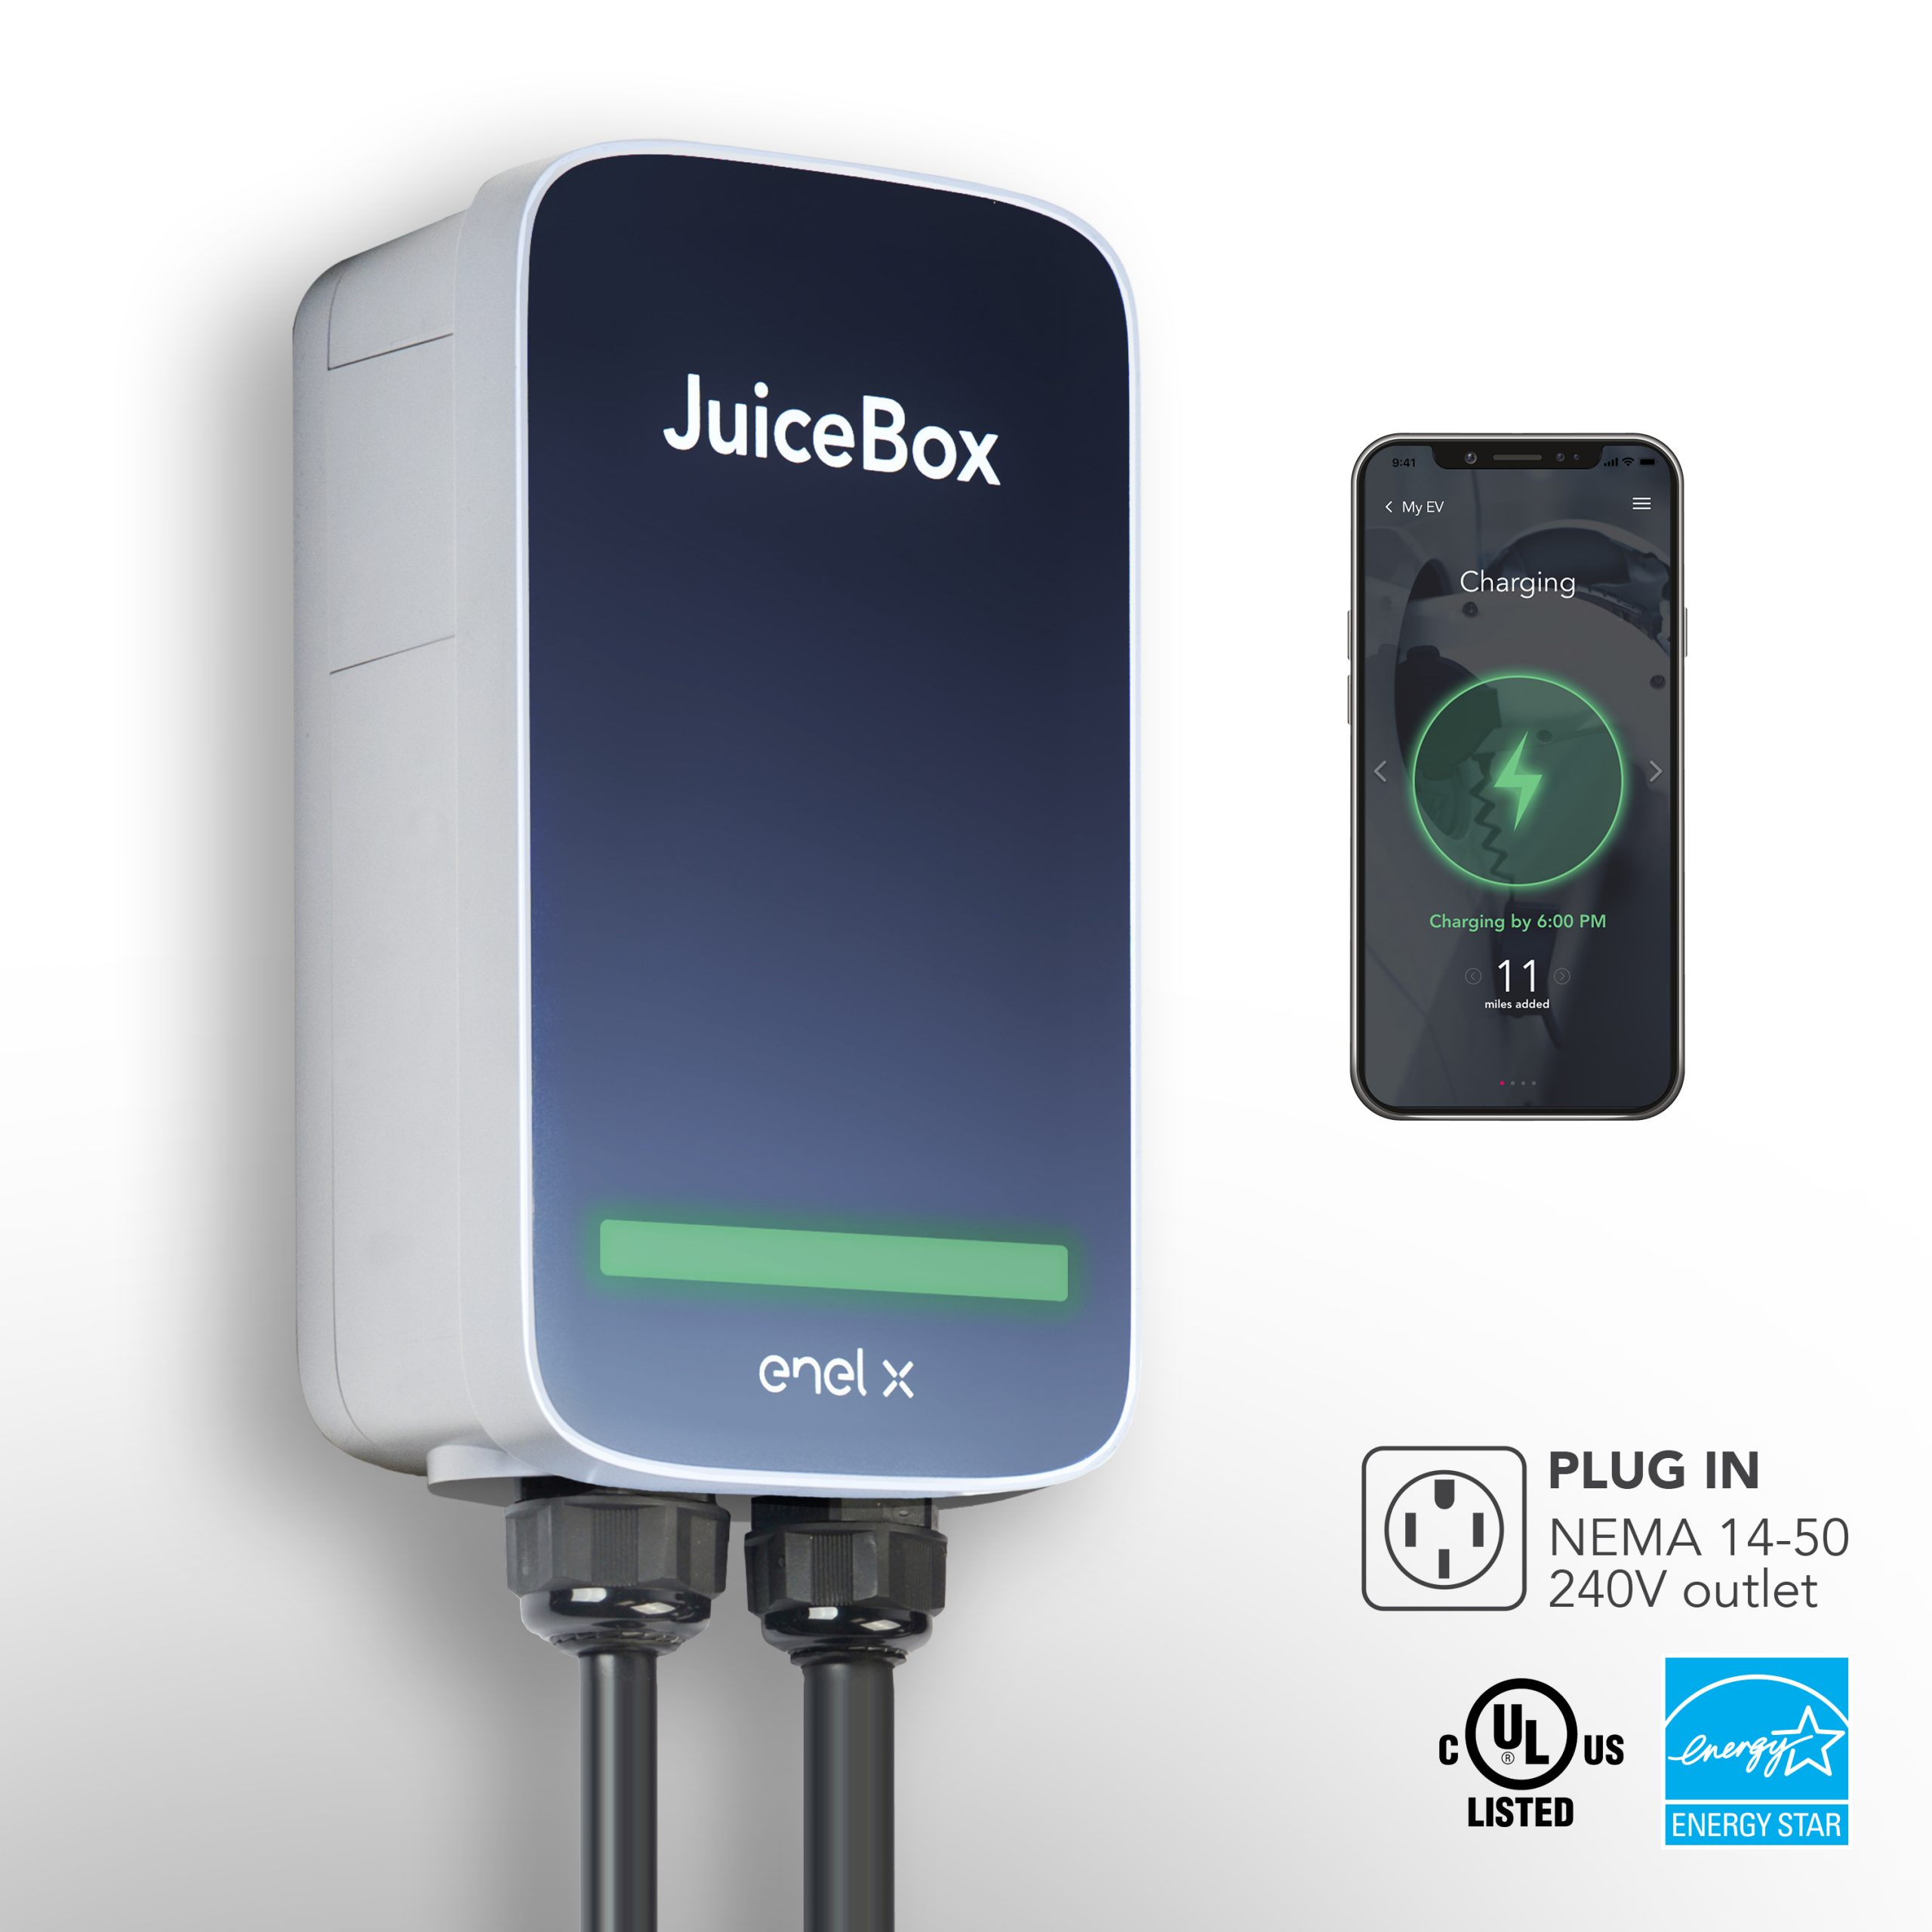 #2. JuiceBox Smart Charger